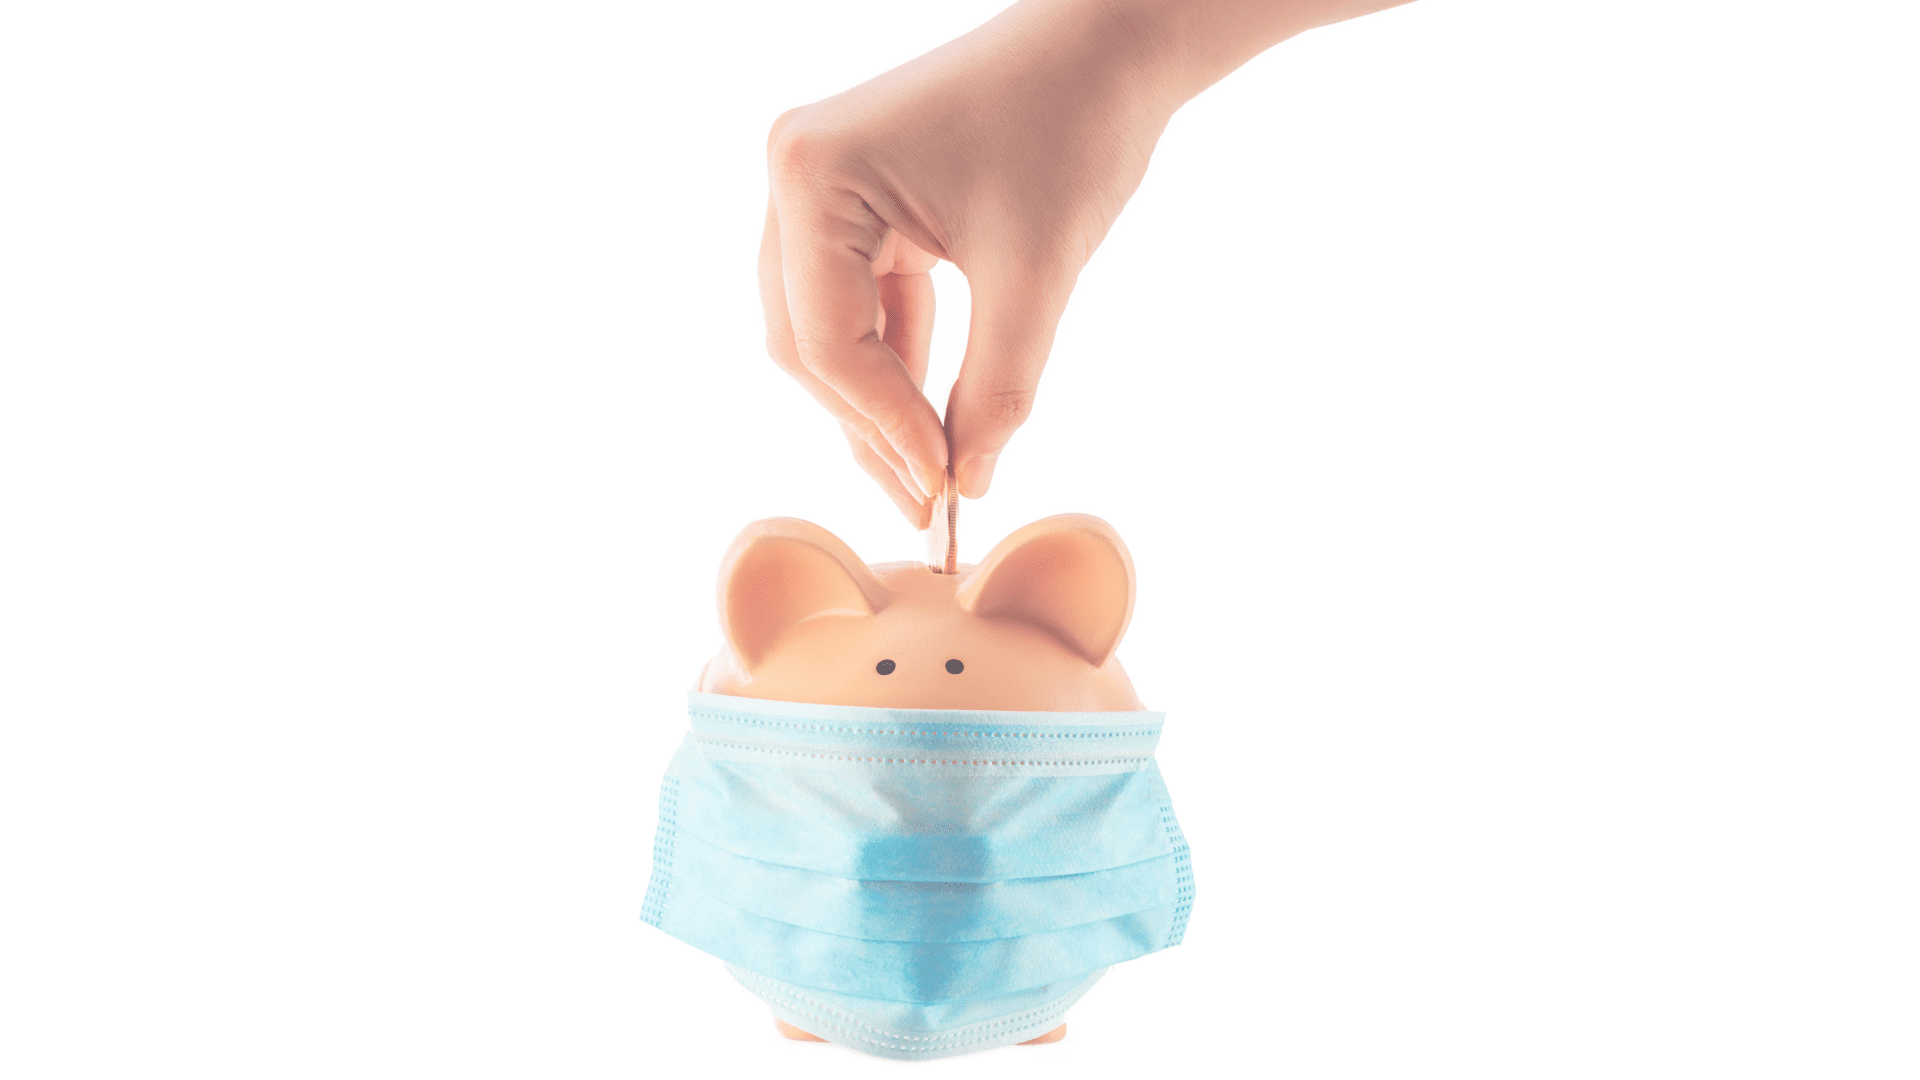 piggy bank with mask over mouth for health and safety while person places coin in bank